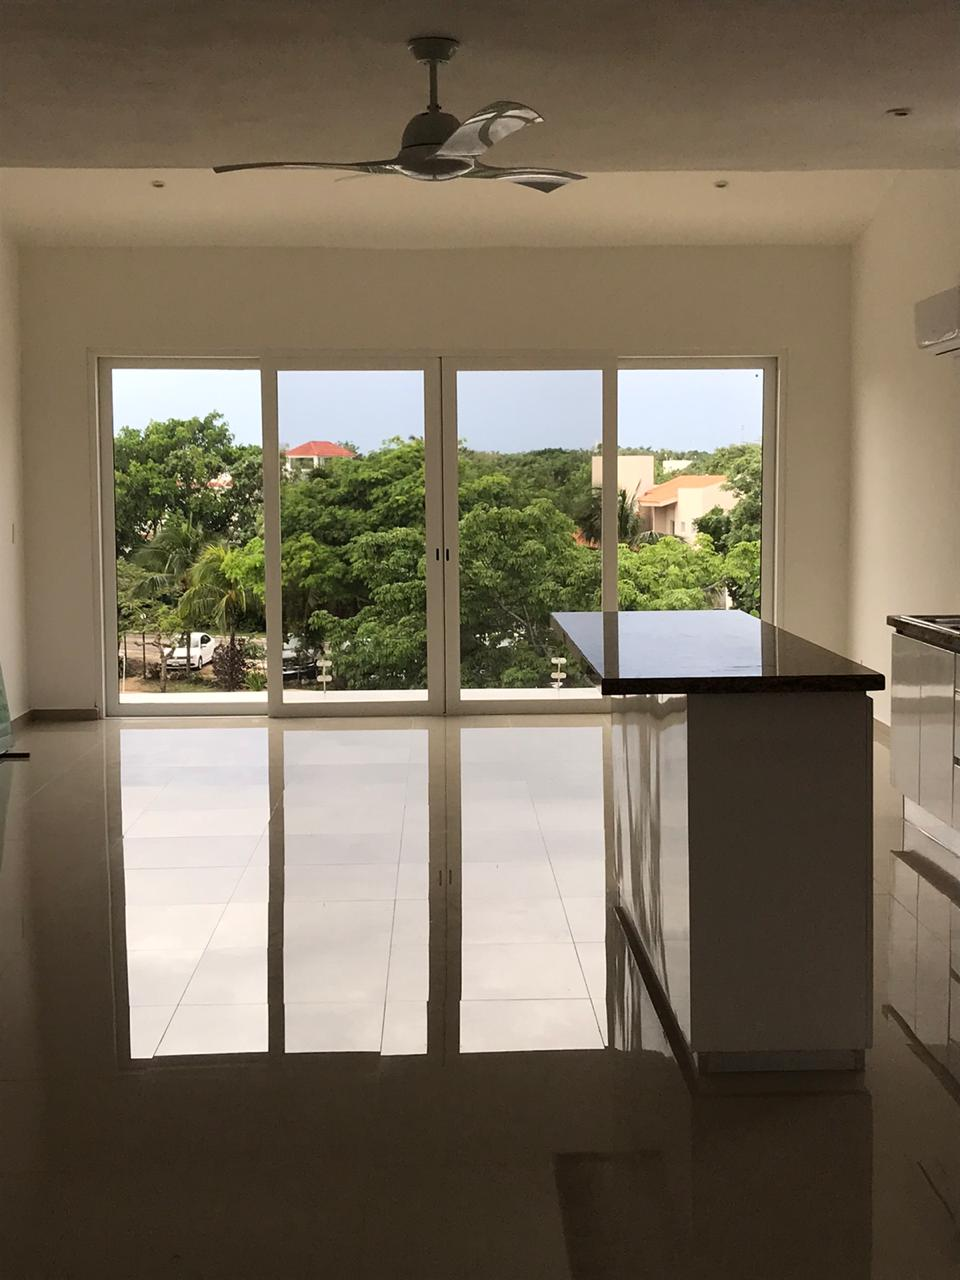 Brand New 2 bedroom Condo in Puerto Aventuras